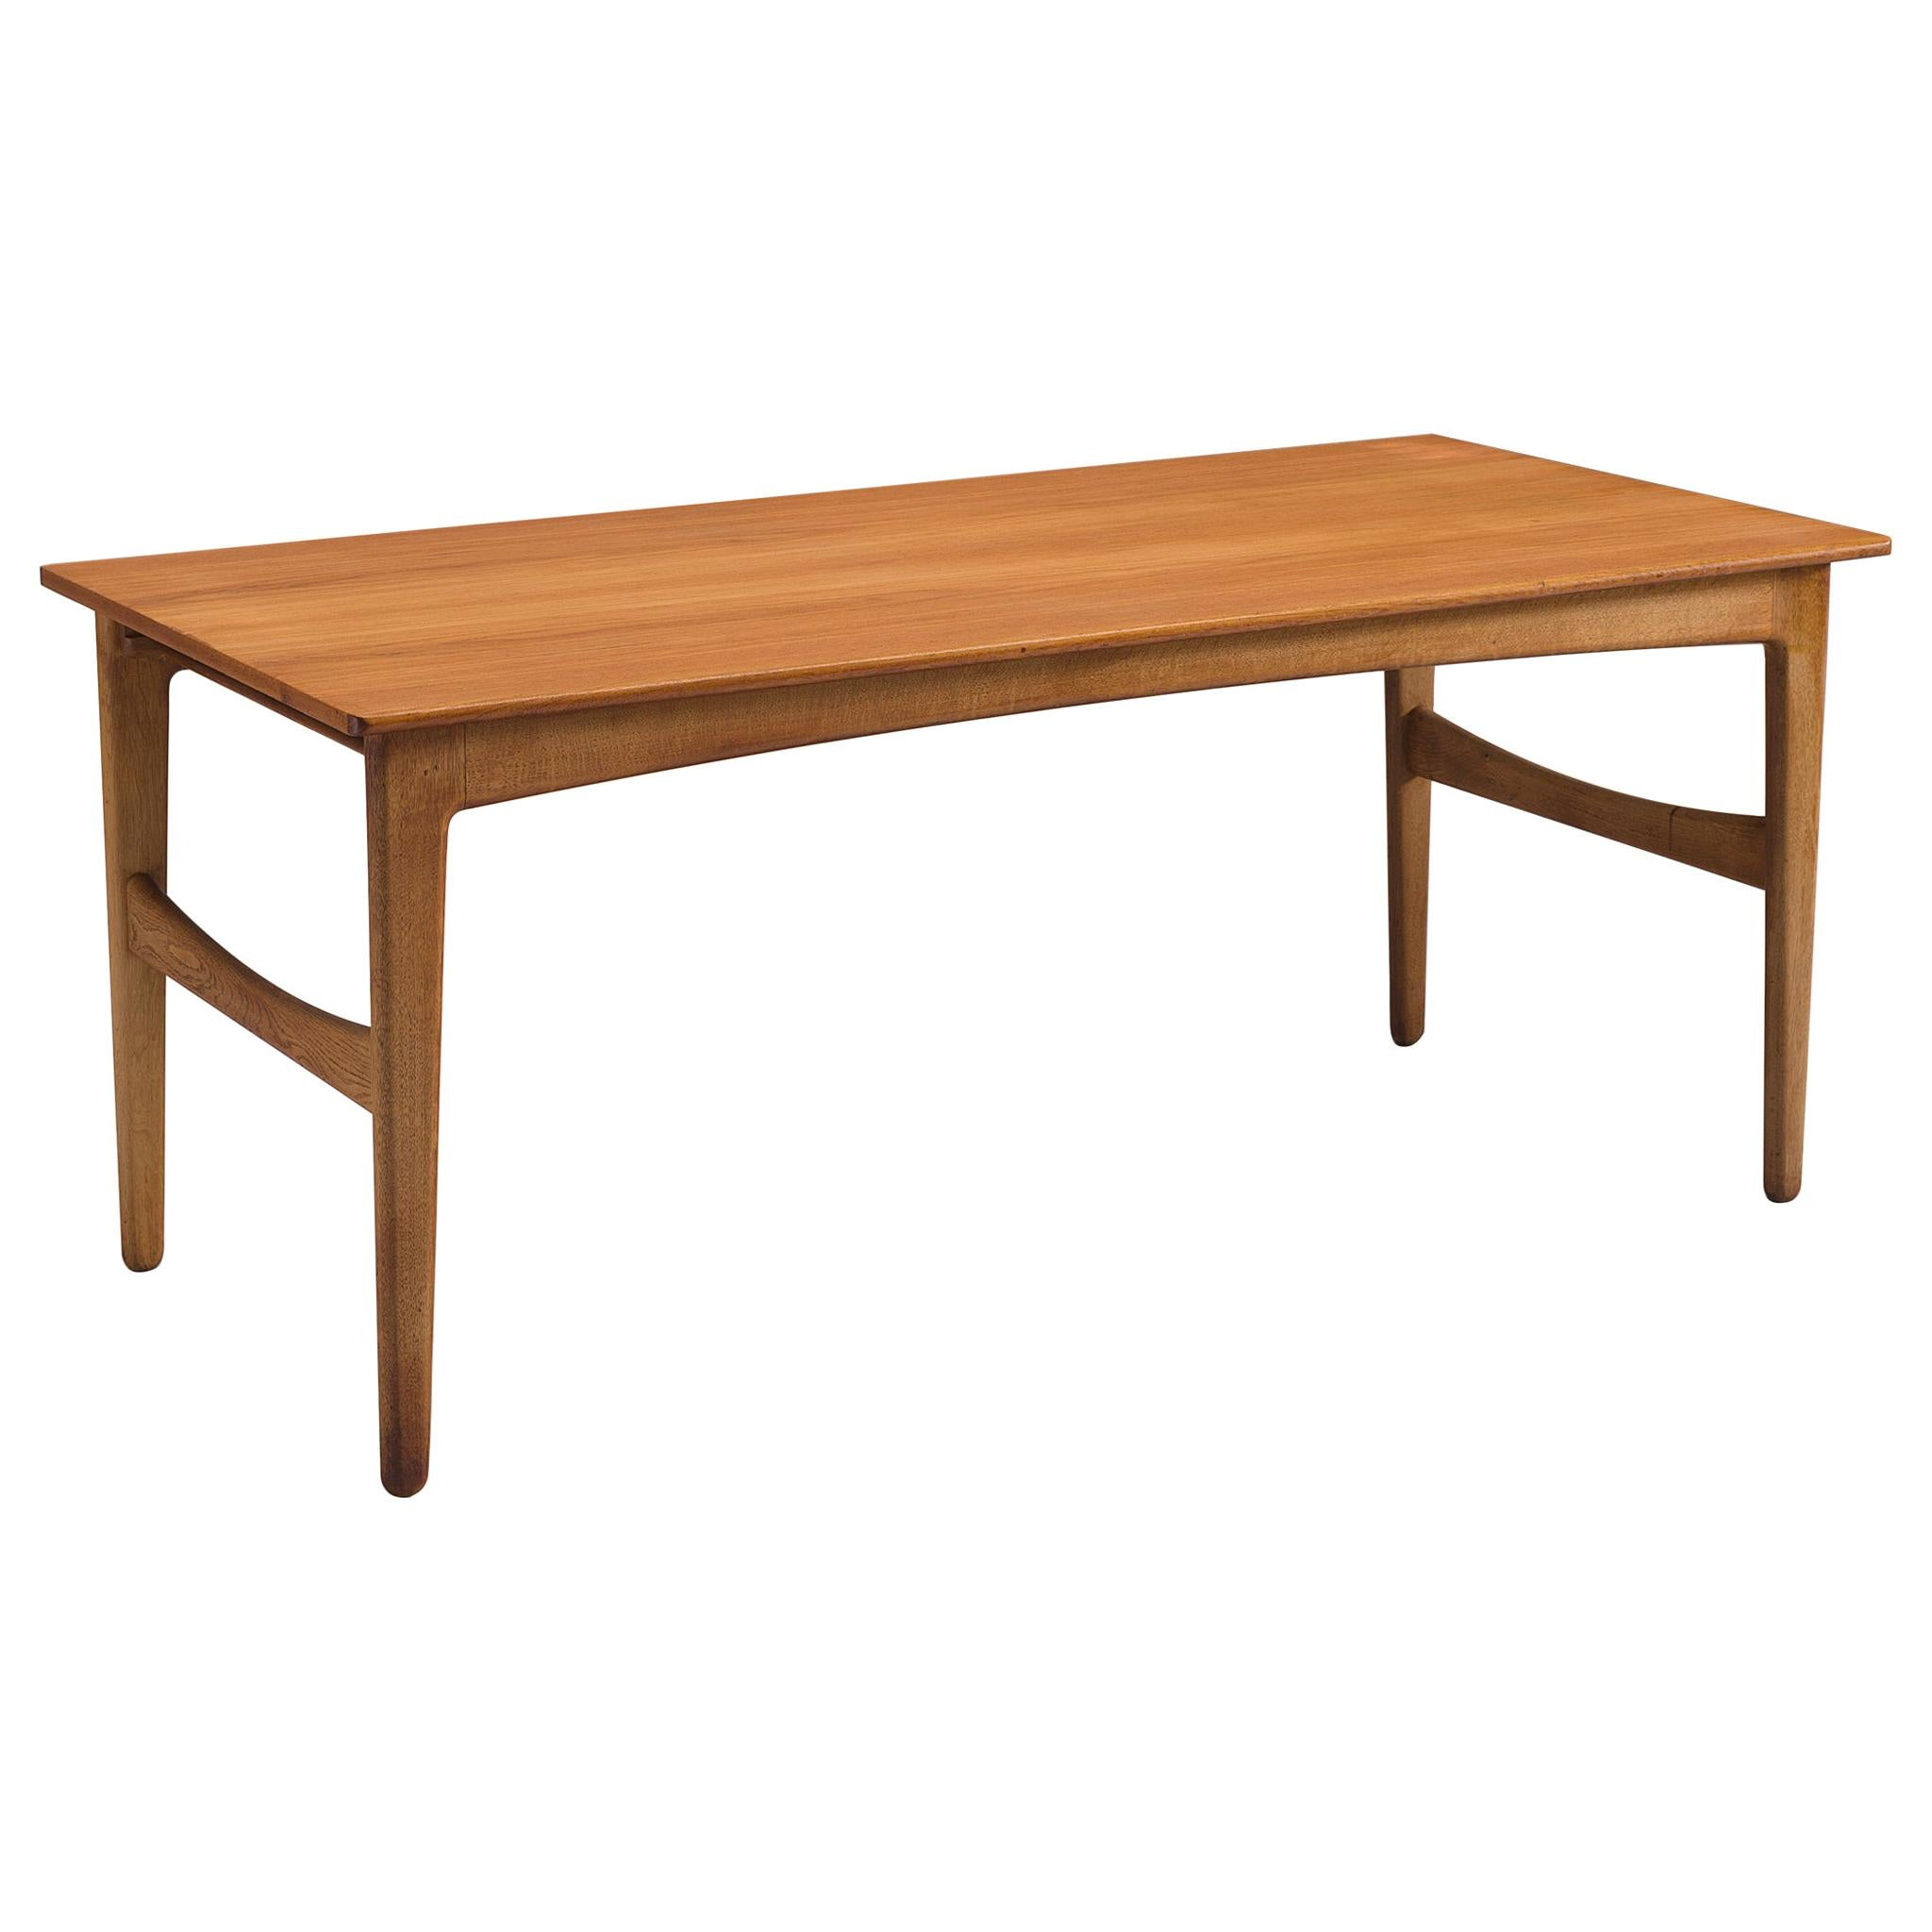 Danish Dining Table in Teak and Oak